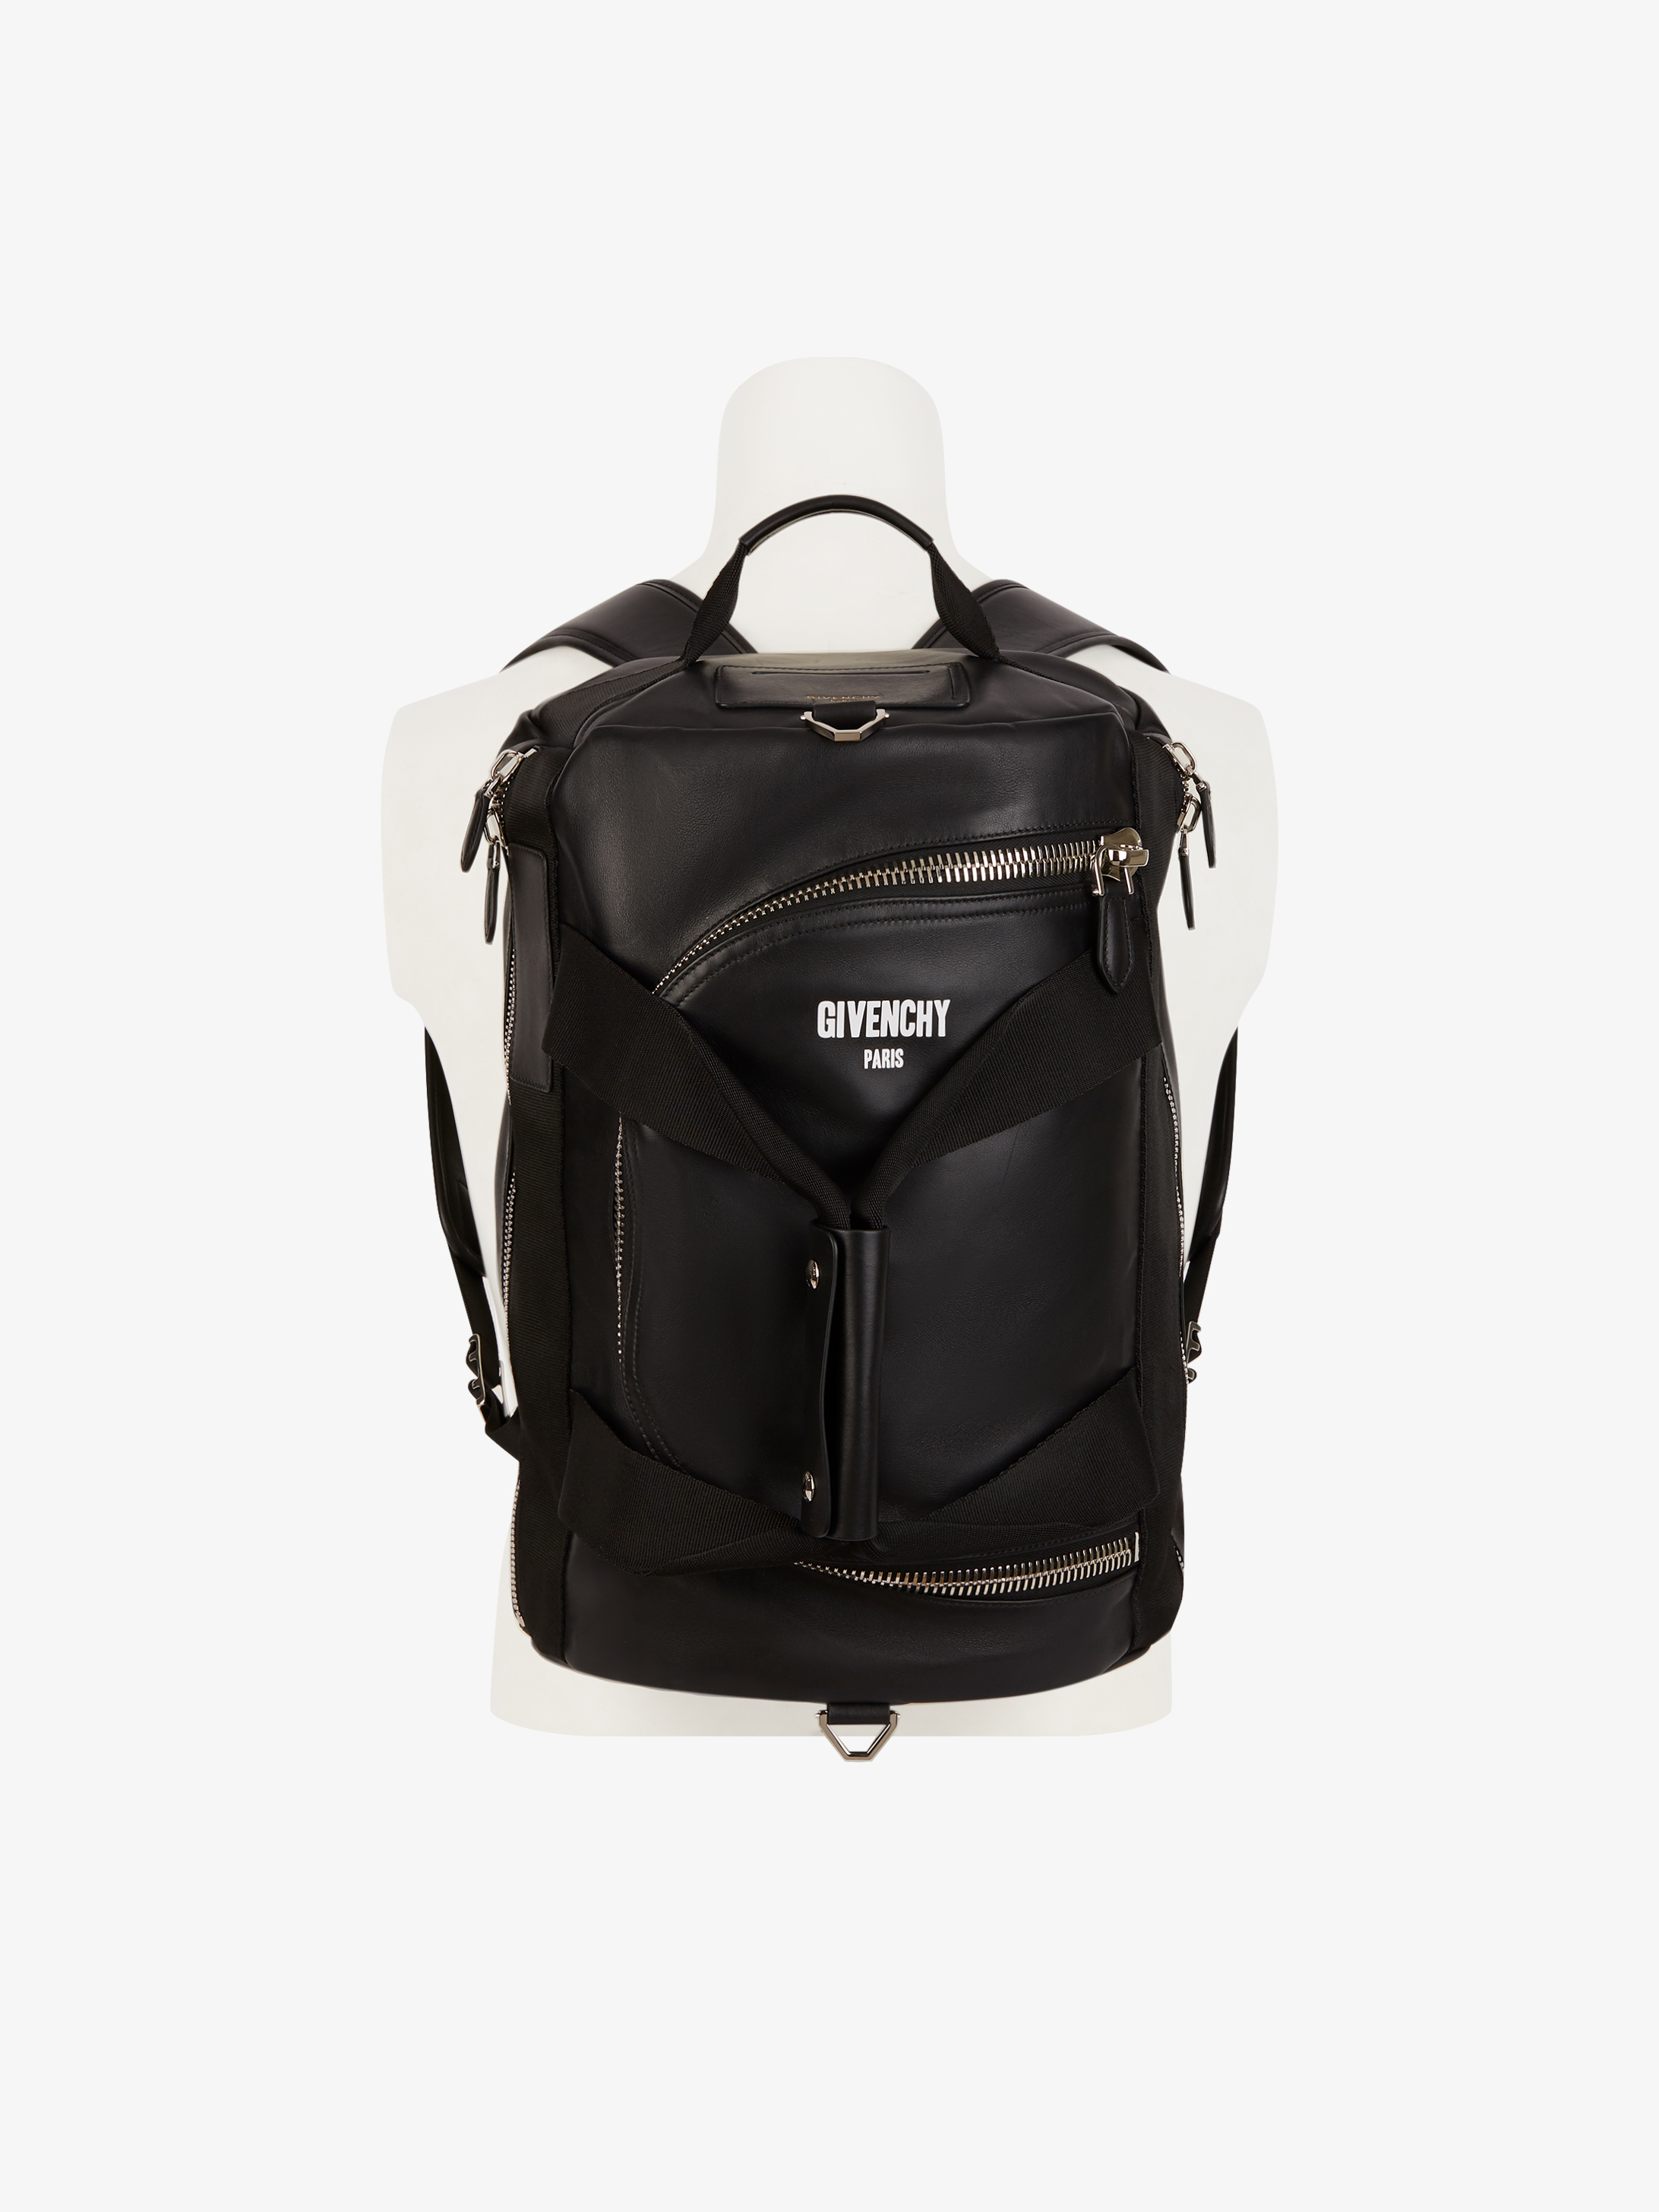 Backpack with GIVENCHY PARIS logo